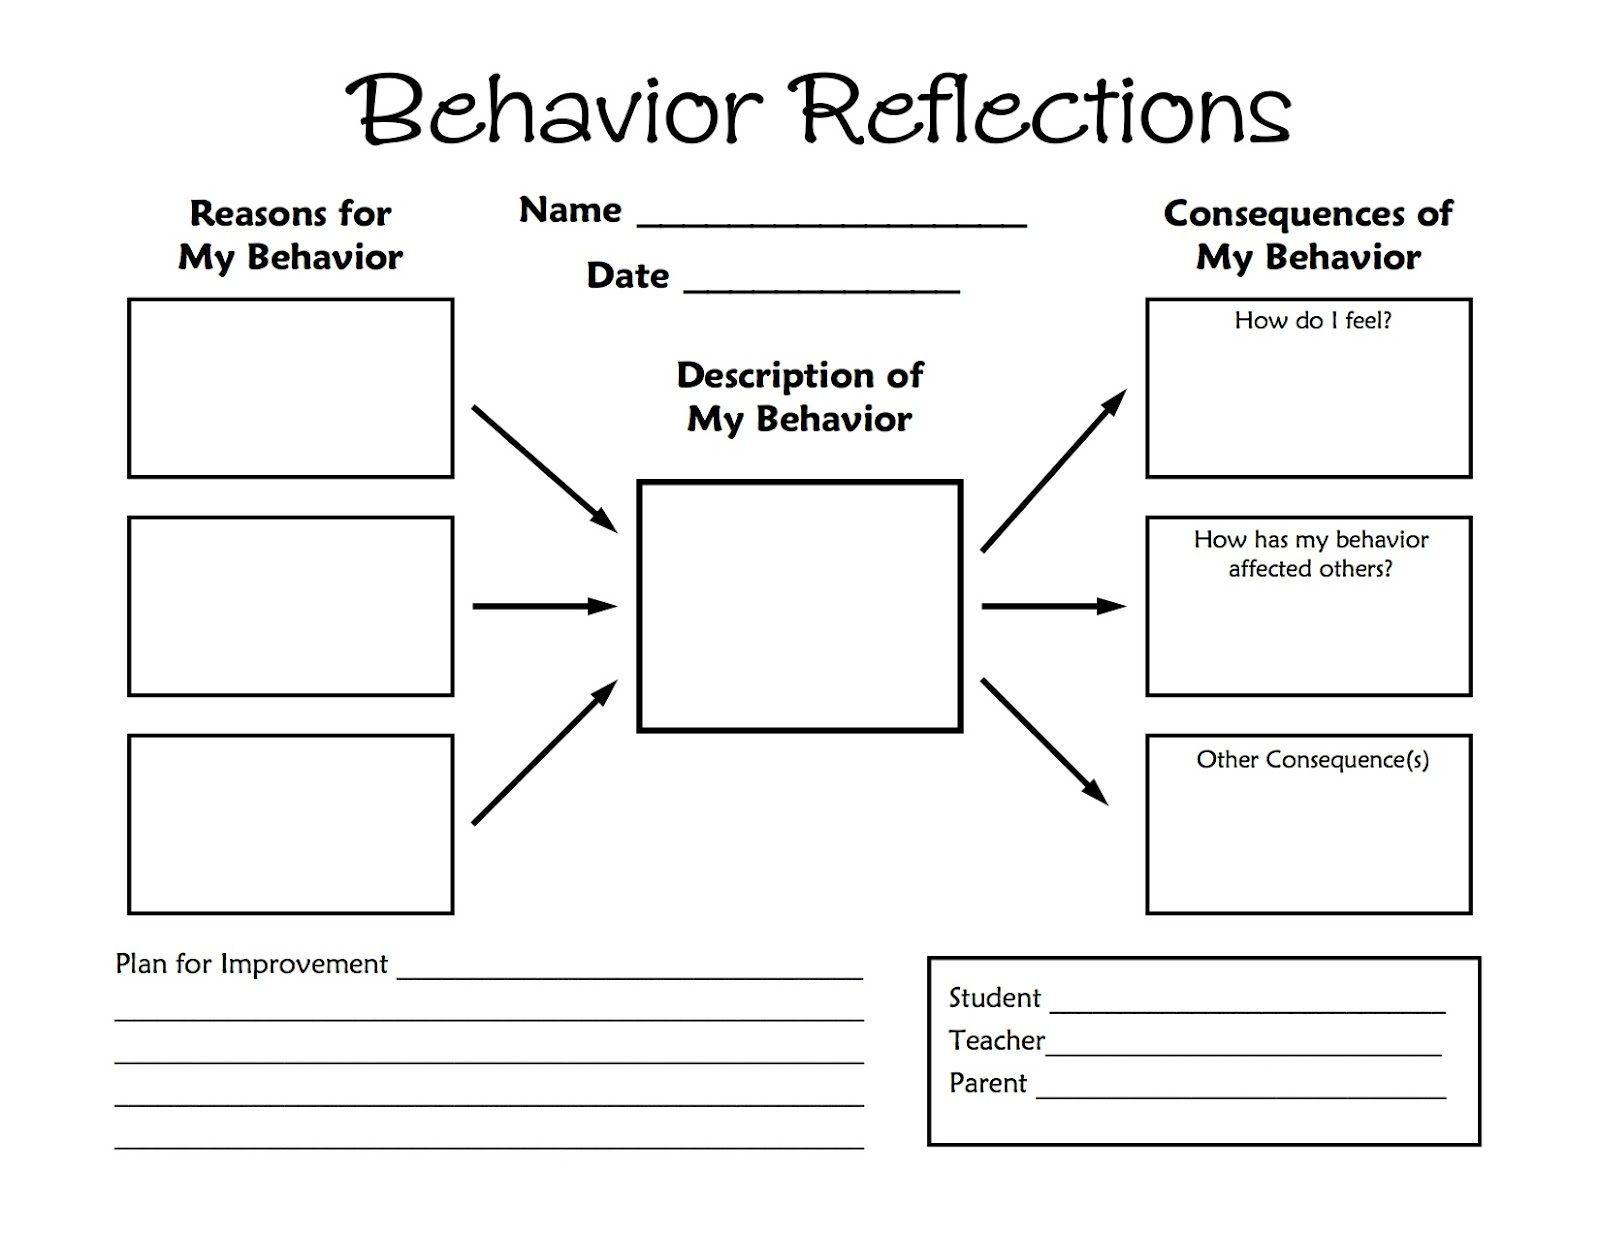 Worksheets Behavior Worksheets printable activity sheets for kids shelter this behavior reflections freebie is a great way to handle misbehavior in